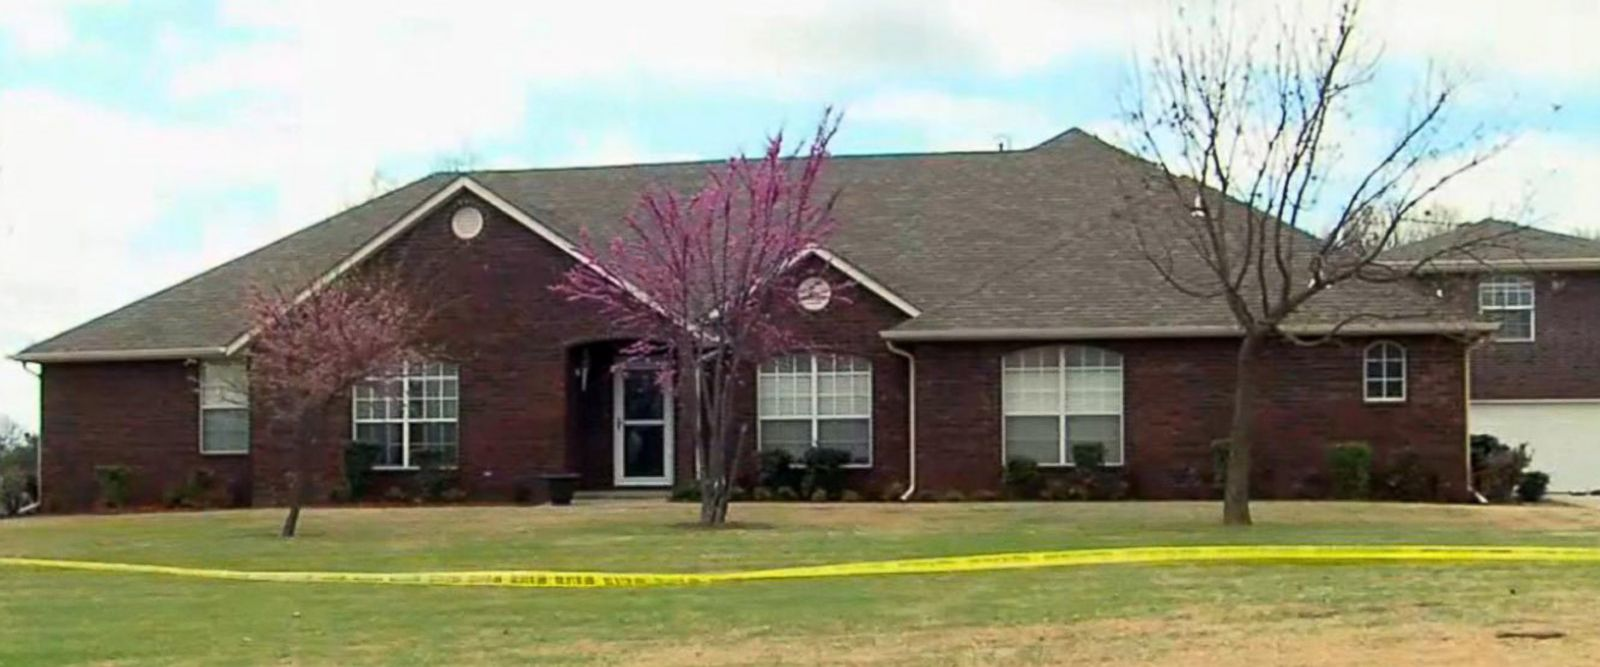 VIDEO: 911 calls released in the deadly burglary in Tulsa, Oklahoma